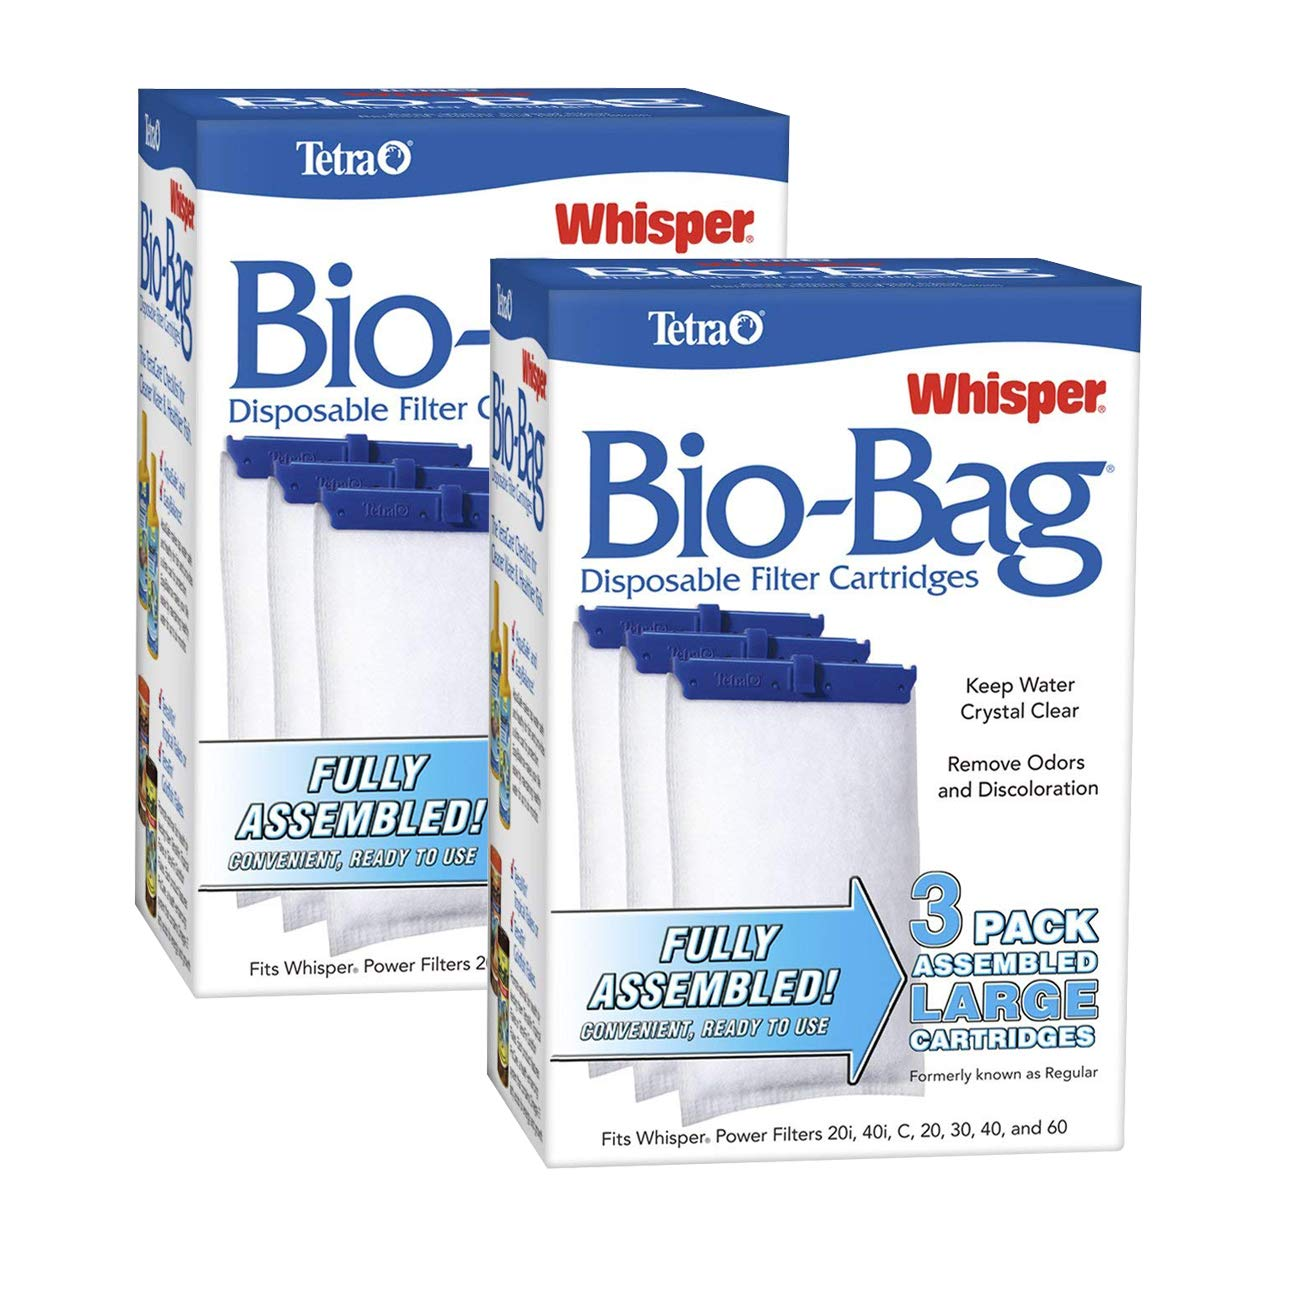 Tetra Whisper Assembled Bio-bag Filter Cartridges, Large, 6-Count by Tetra